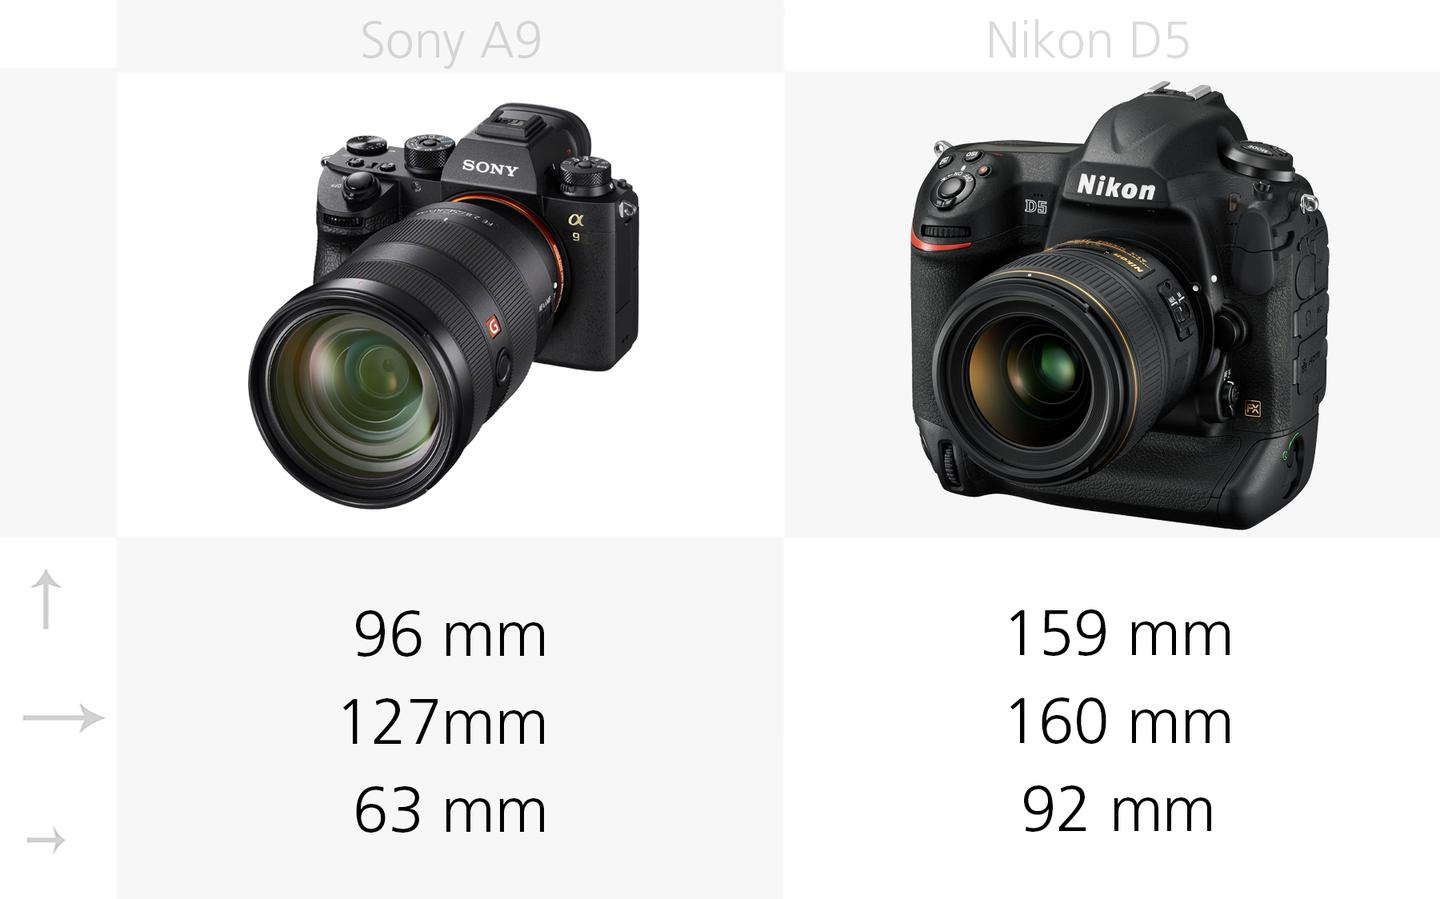 The dimensions of the Sony A9 and Nikon D5 compared